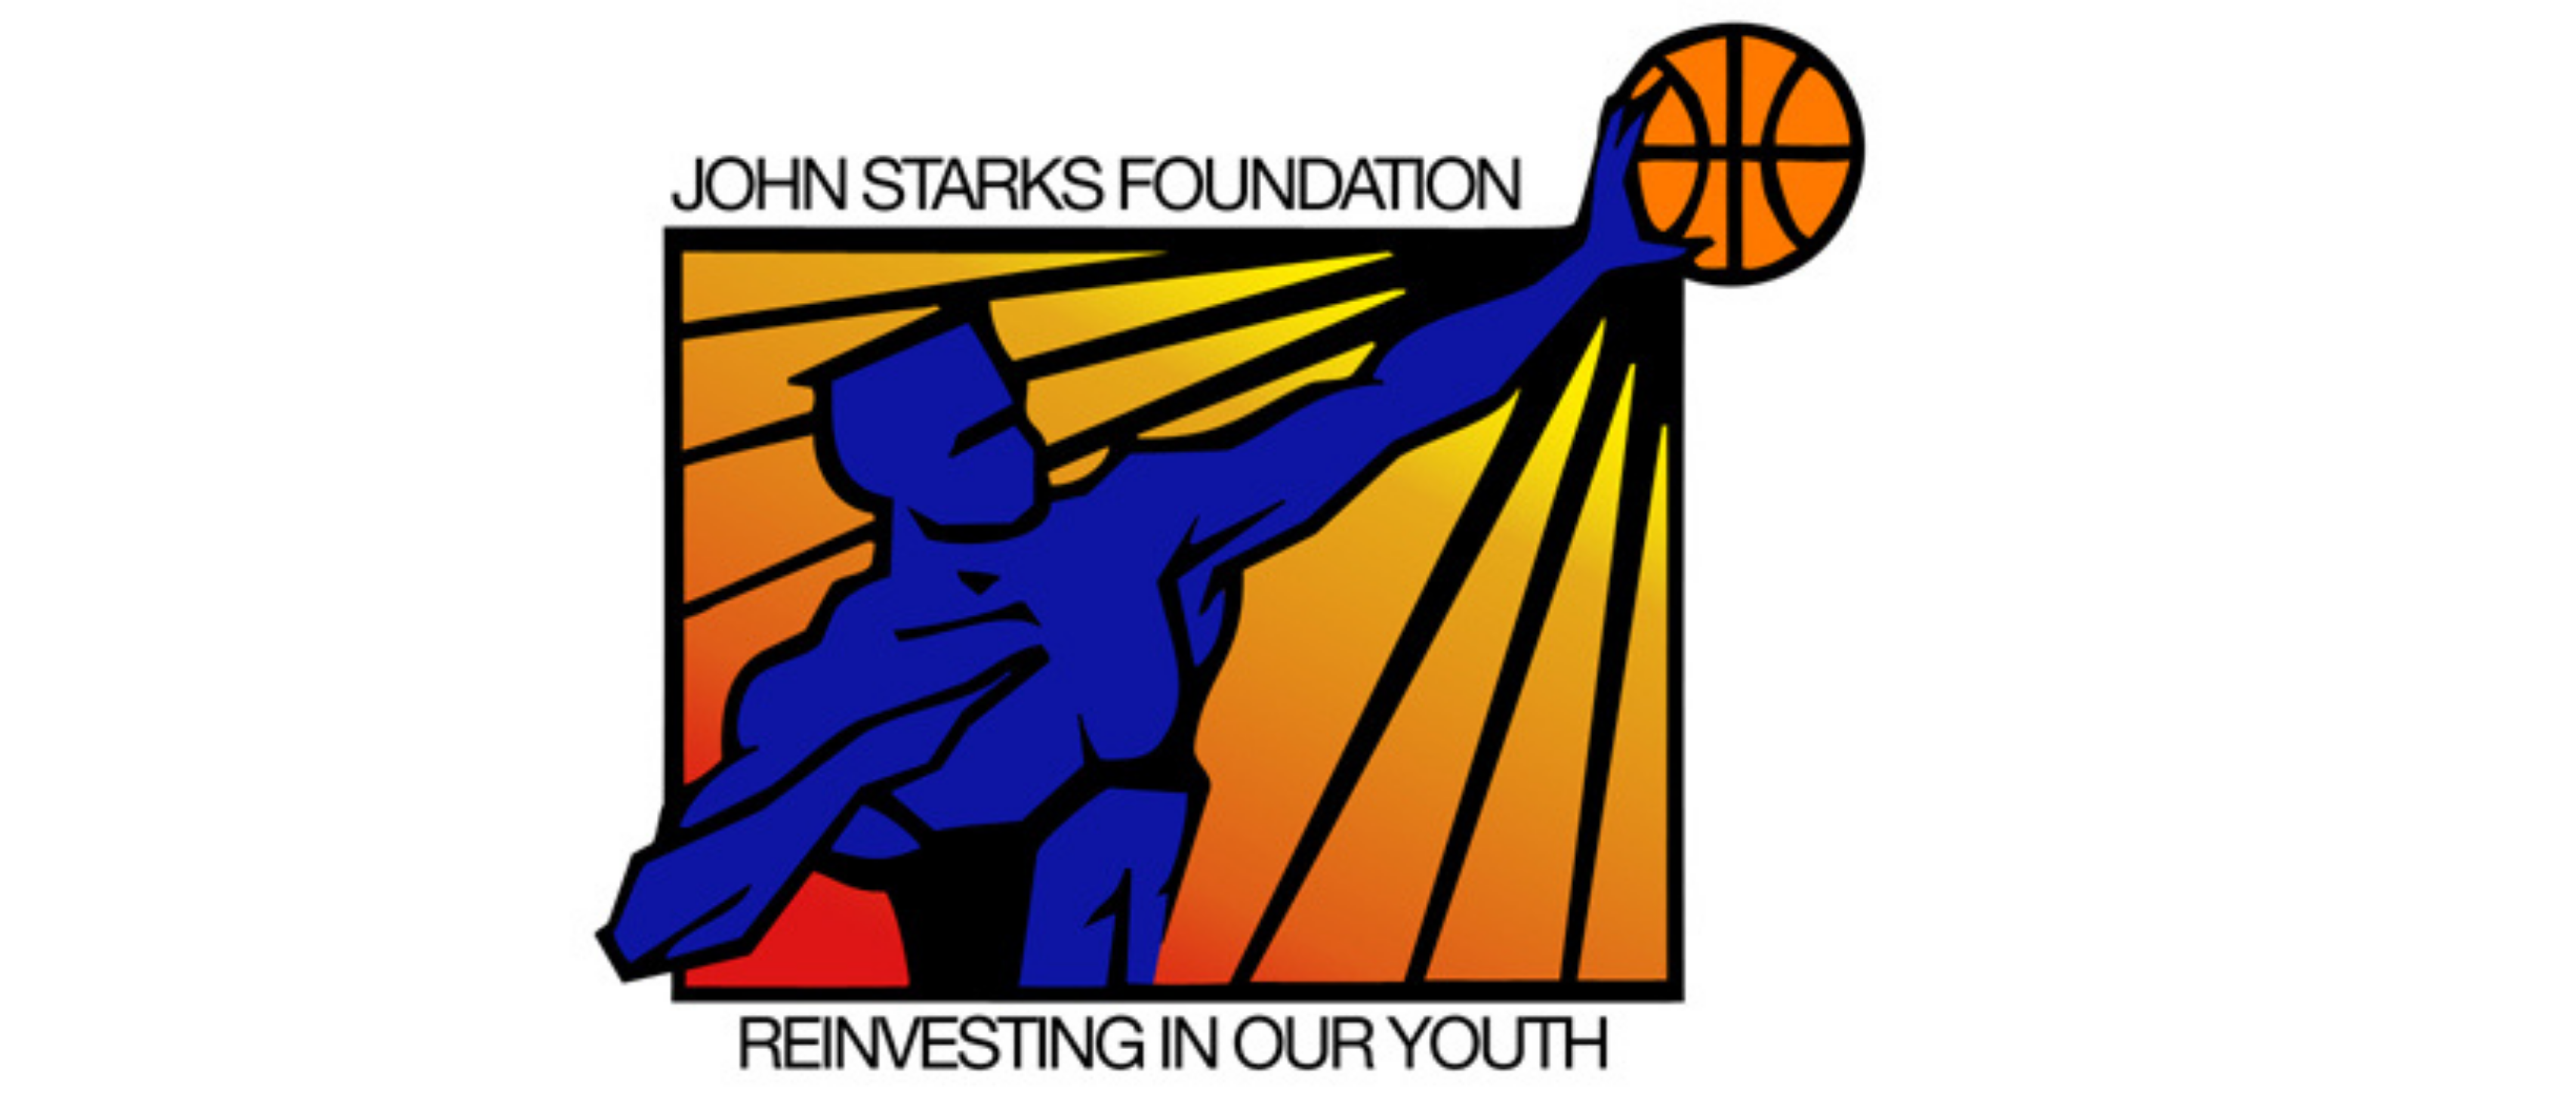 John Starks From Basketball Star To Leading Change In His Community